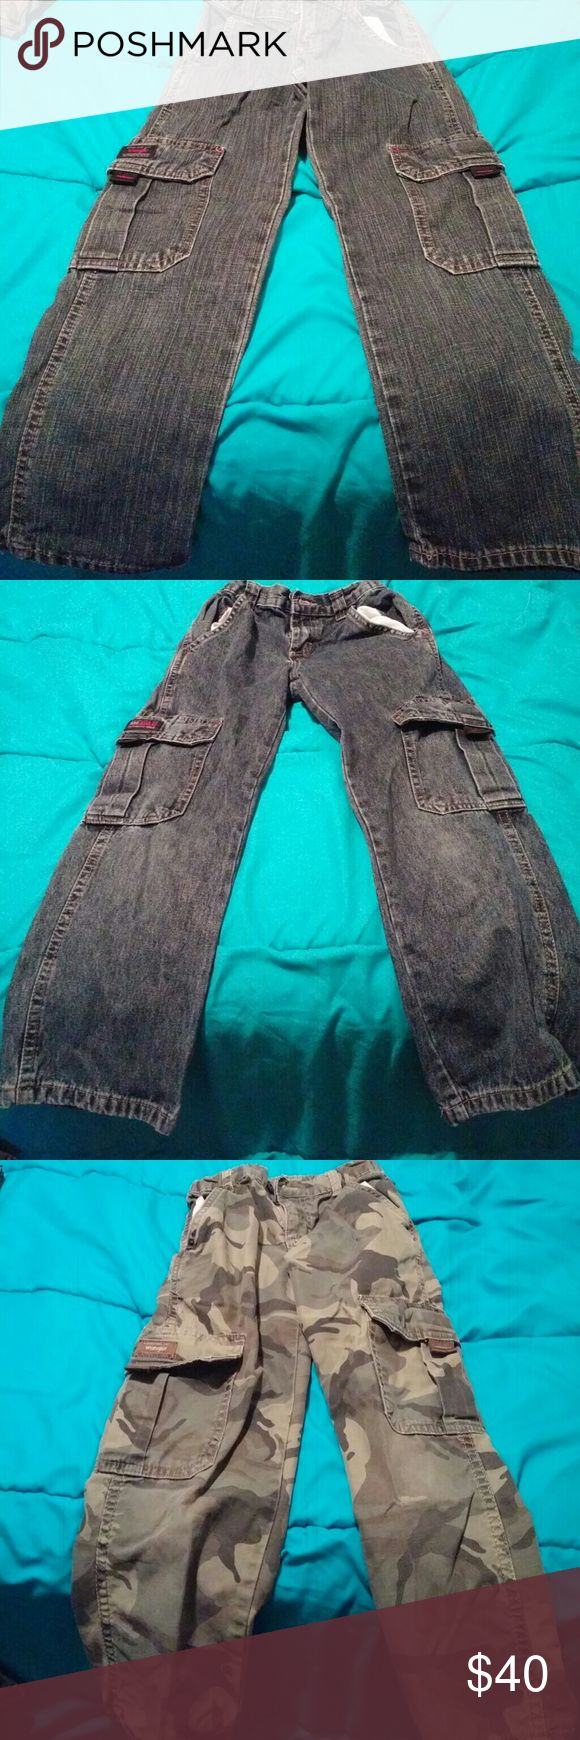 Boys Wrangler jeans size 8 slim Boys Wrangler jeans size 8 slim with an adjustable waist. The first 3 pair are cargo and the last pair is straight leg. Wrangler Jeans